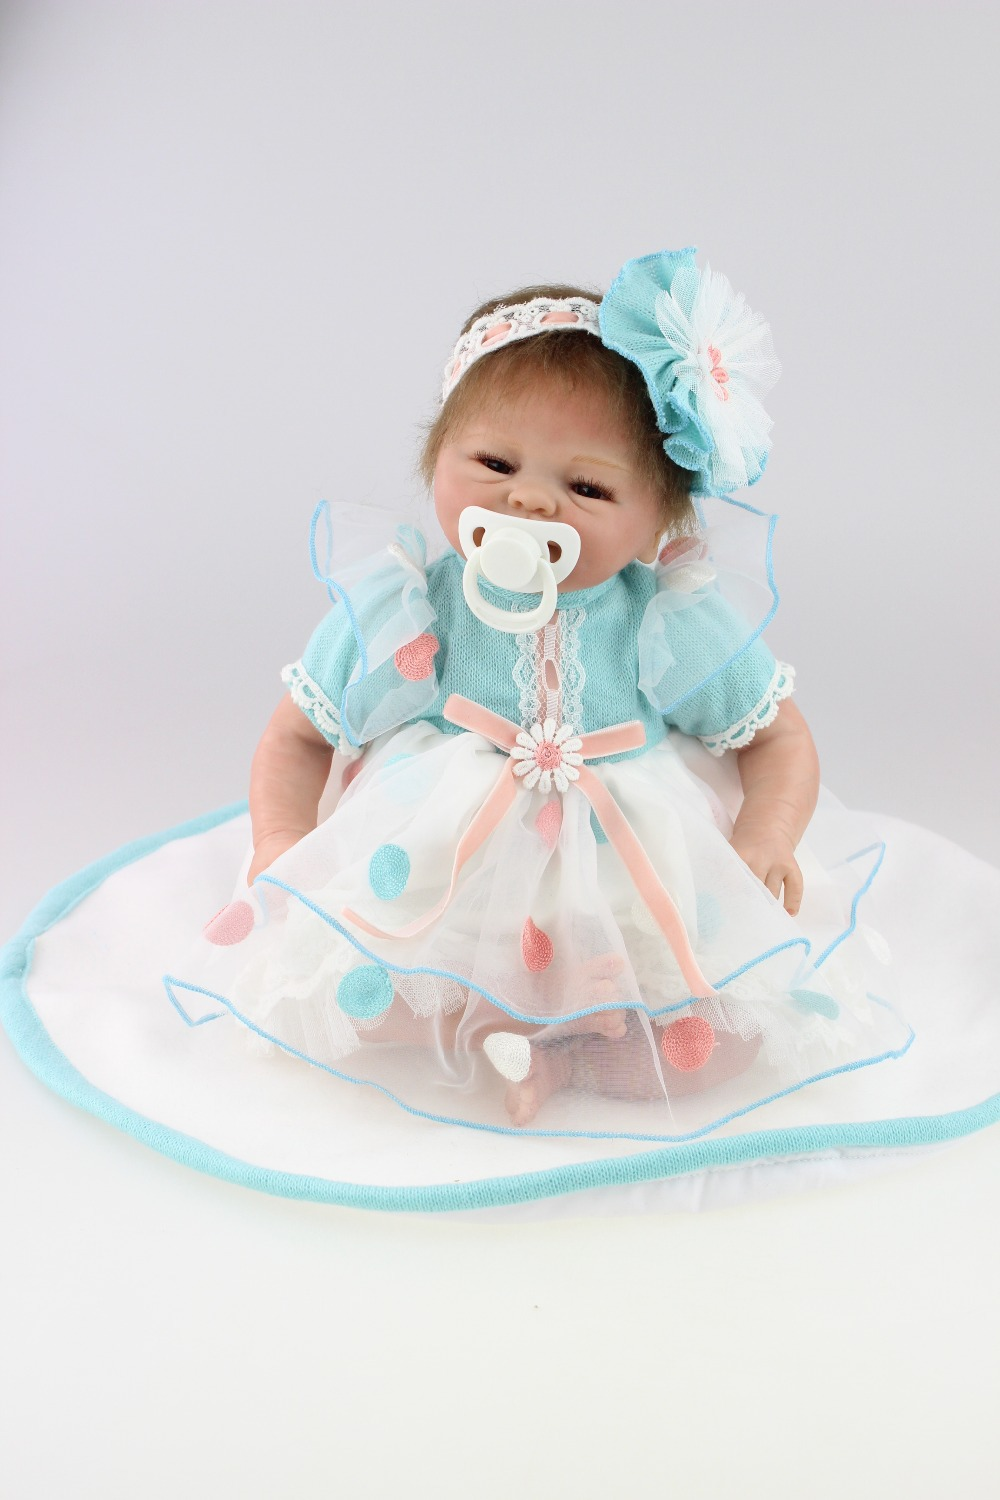 2015 NEW design  lifelike reborn baby dolls fashion doll silicone vinyl real soft gentle touch for children 17inch2015 NEW design  lifelike reborn baby dolls fashion doll silicone vinyl real soft gentle touch for children 17inch